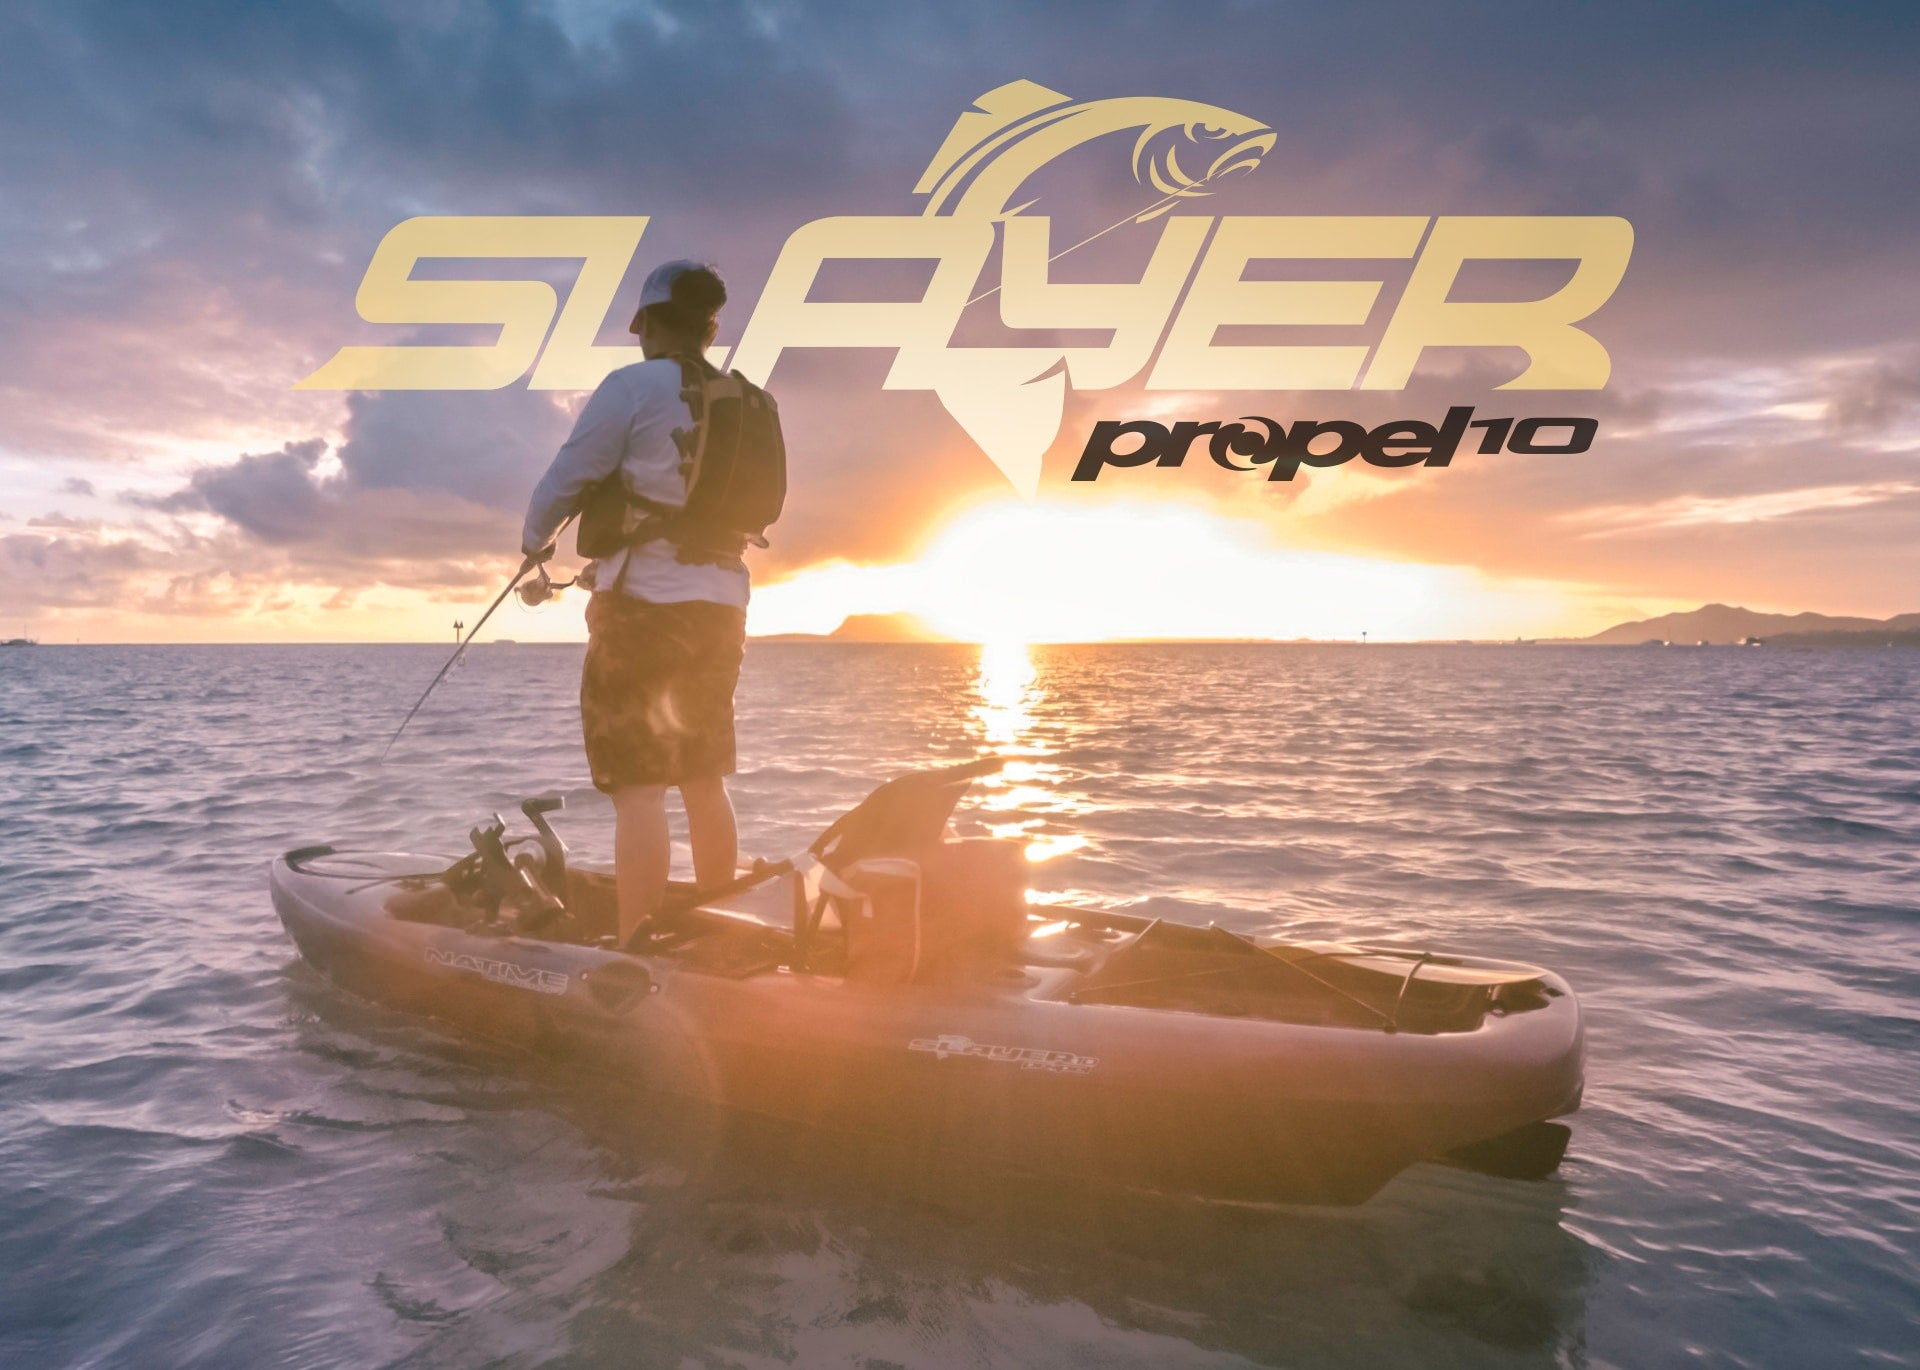 Angler fishing while standing in their Native Watercraft Slayer Propel 10